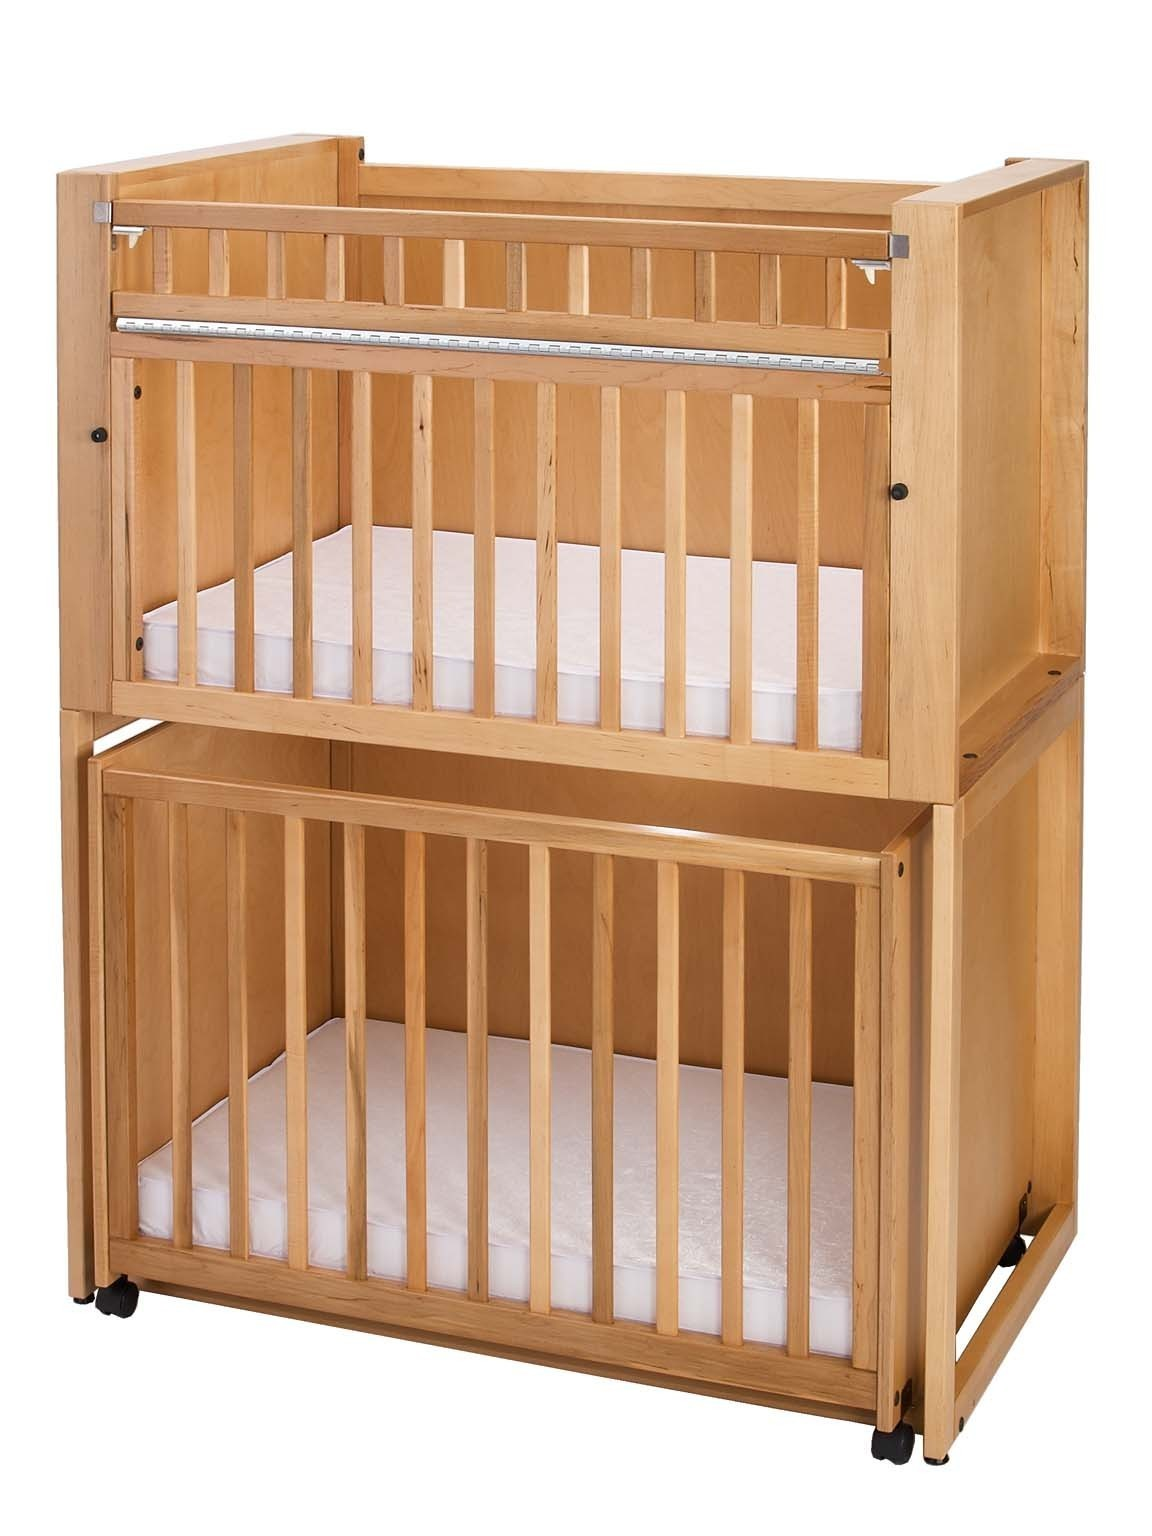 C 4 Stacking Crib Four Infant Bunkies Crib Southeast